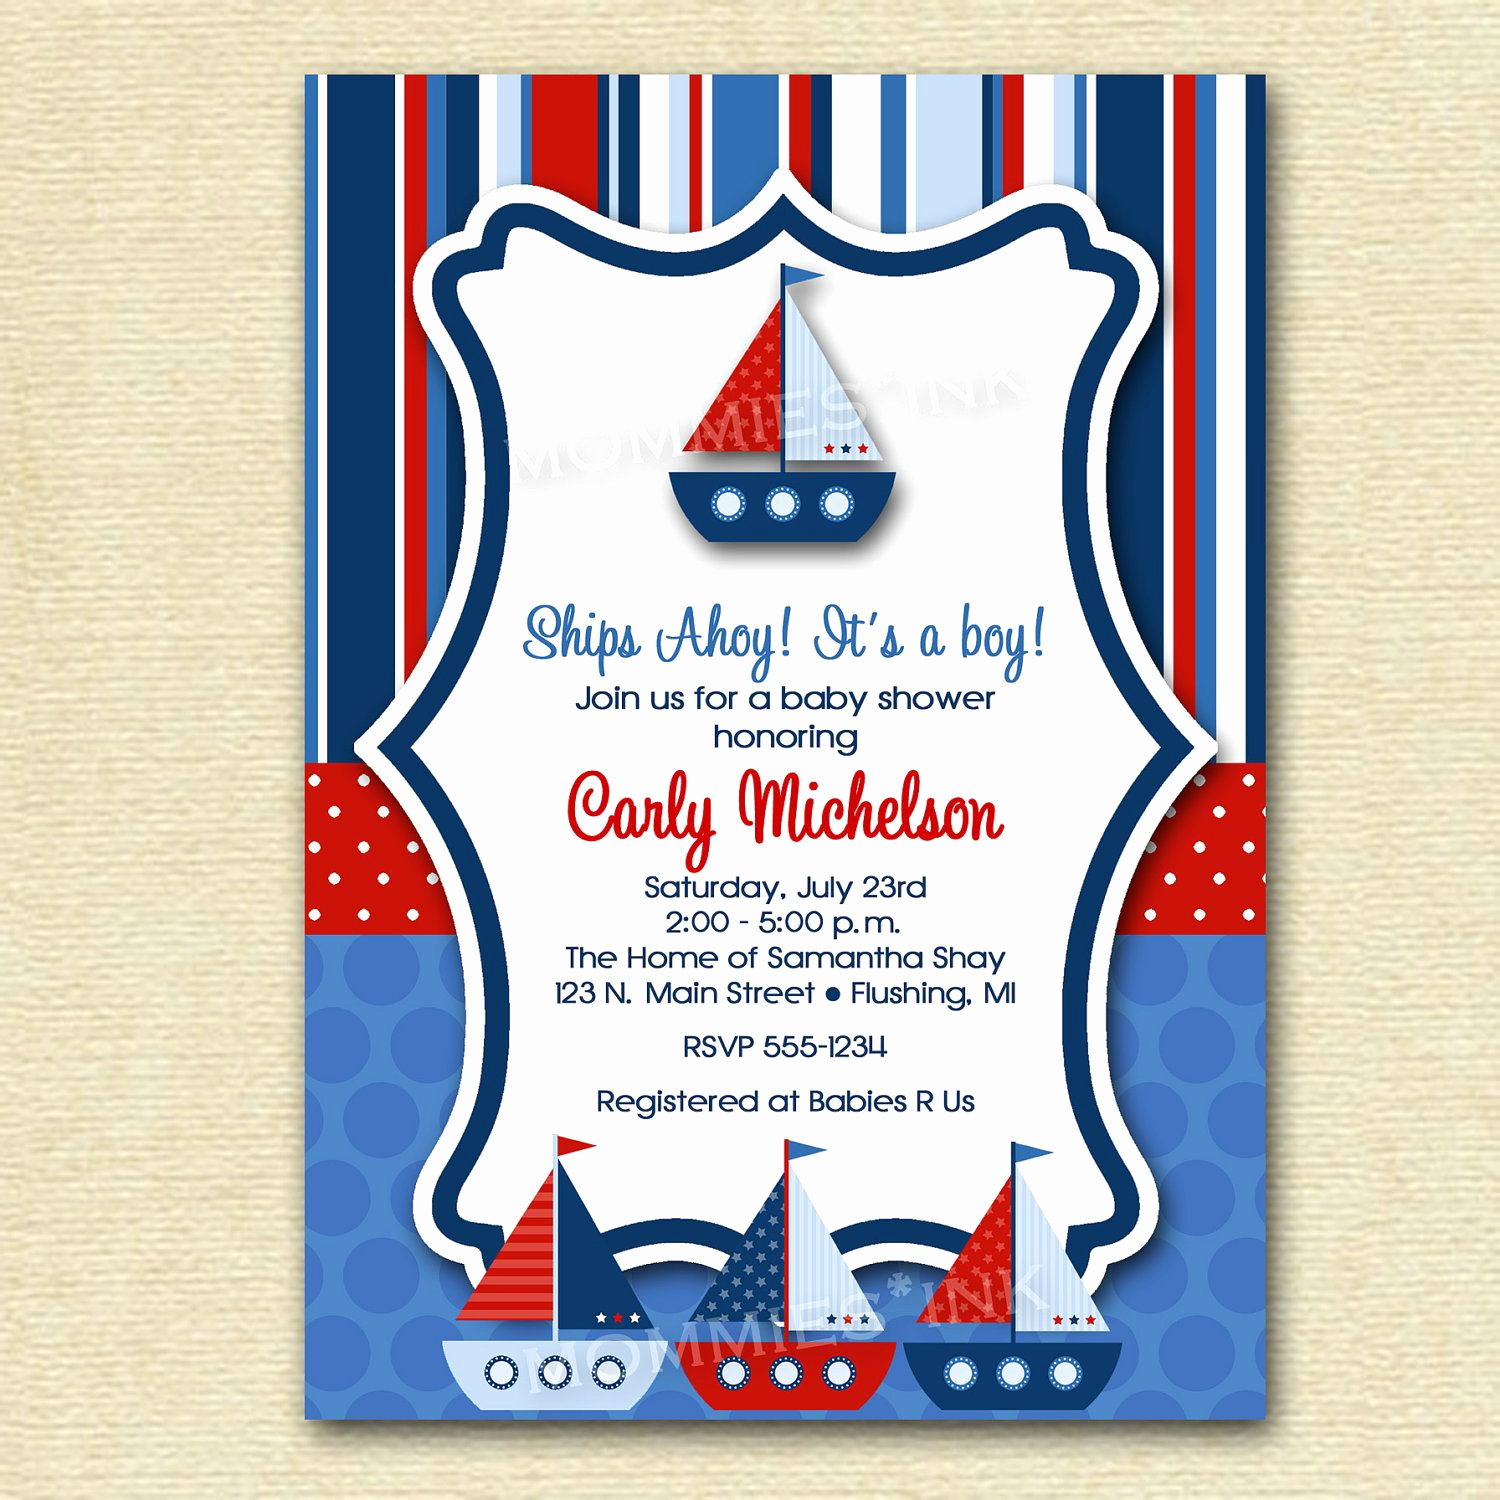 Nautical theme Baby Shower Invitation Beautiful Baby Shower Invitation Ships Ahoy Baby Shower Sailboat